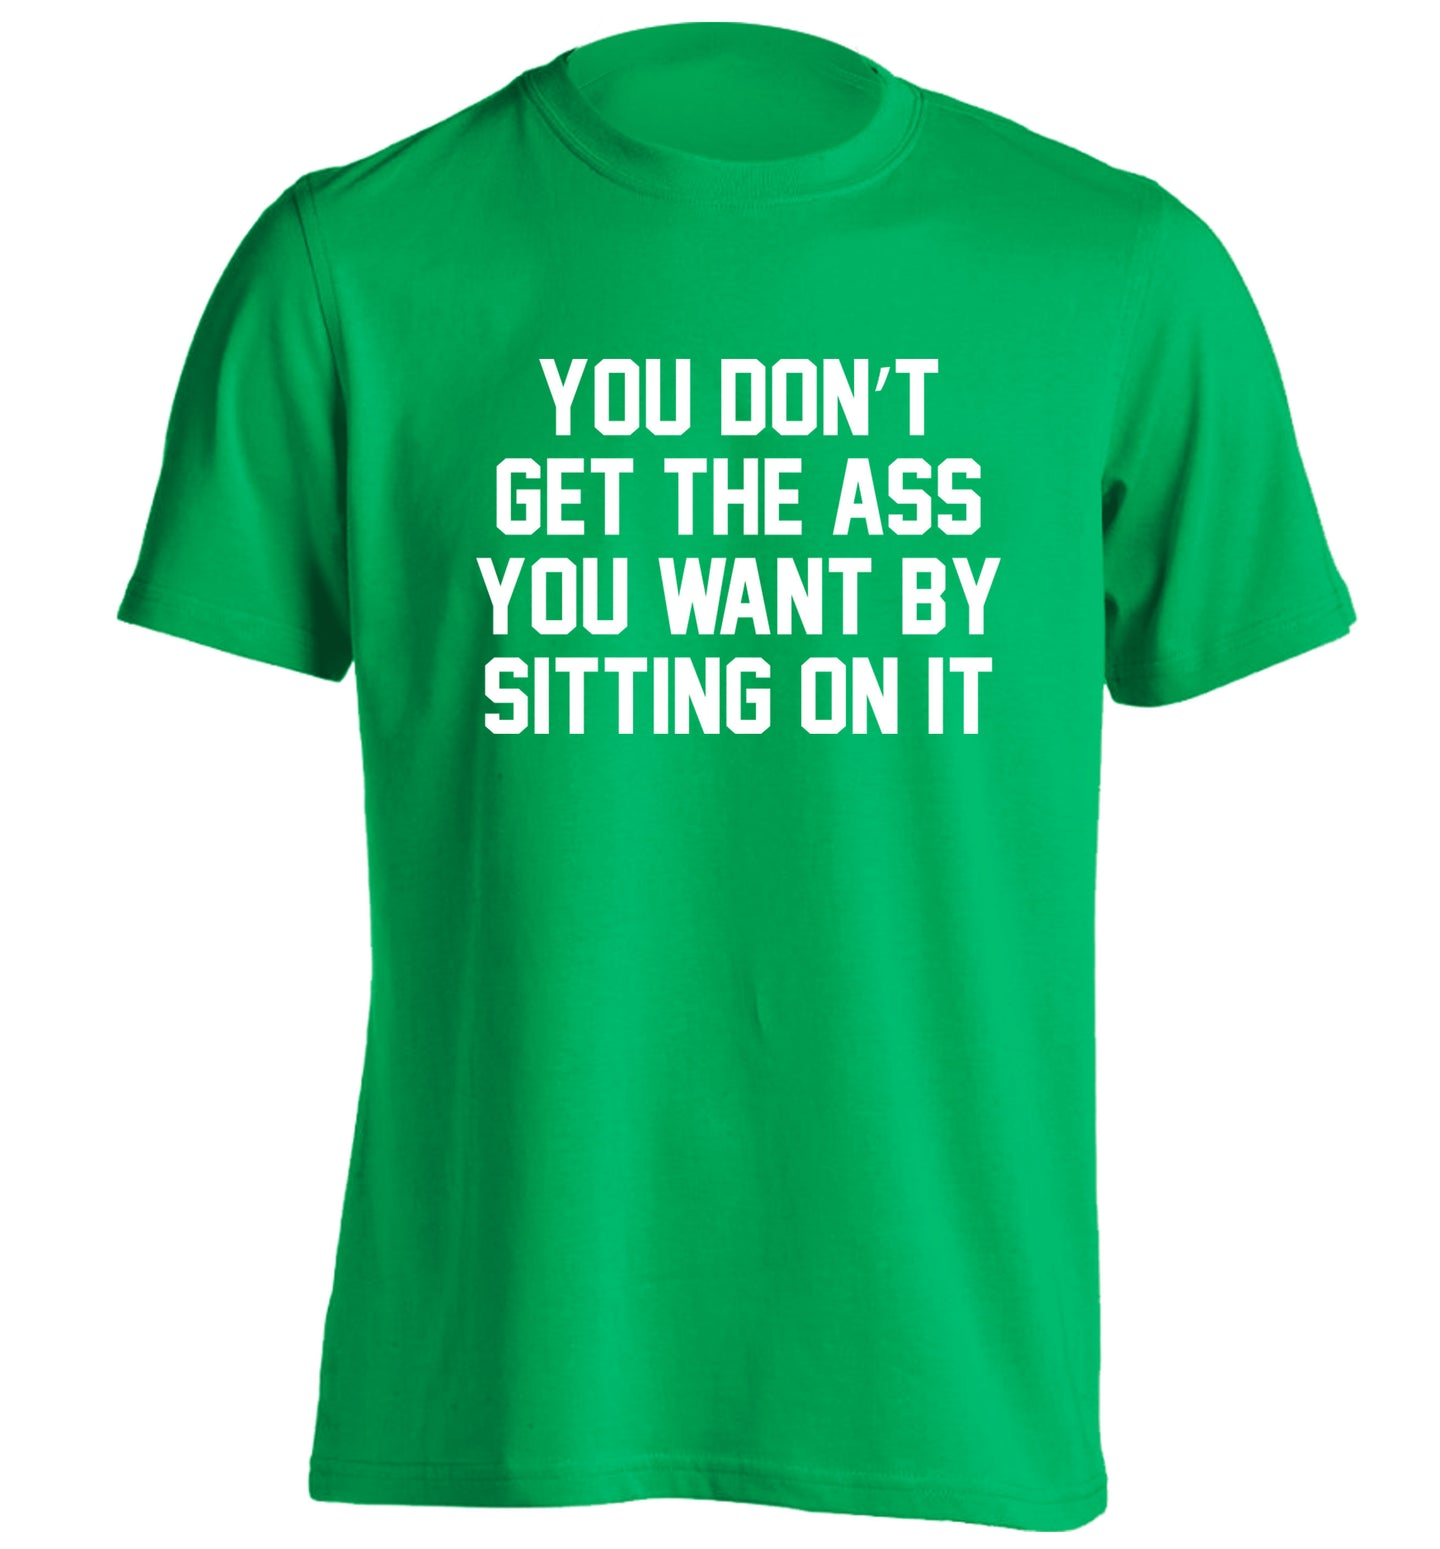 You don't get the ass you want by sitting on it adults unisex green Tshirt 2XL